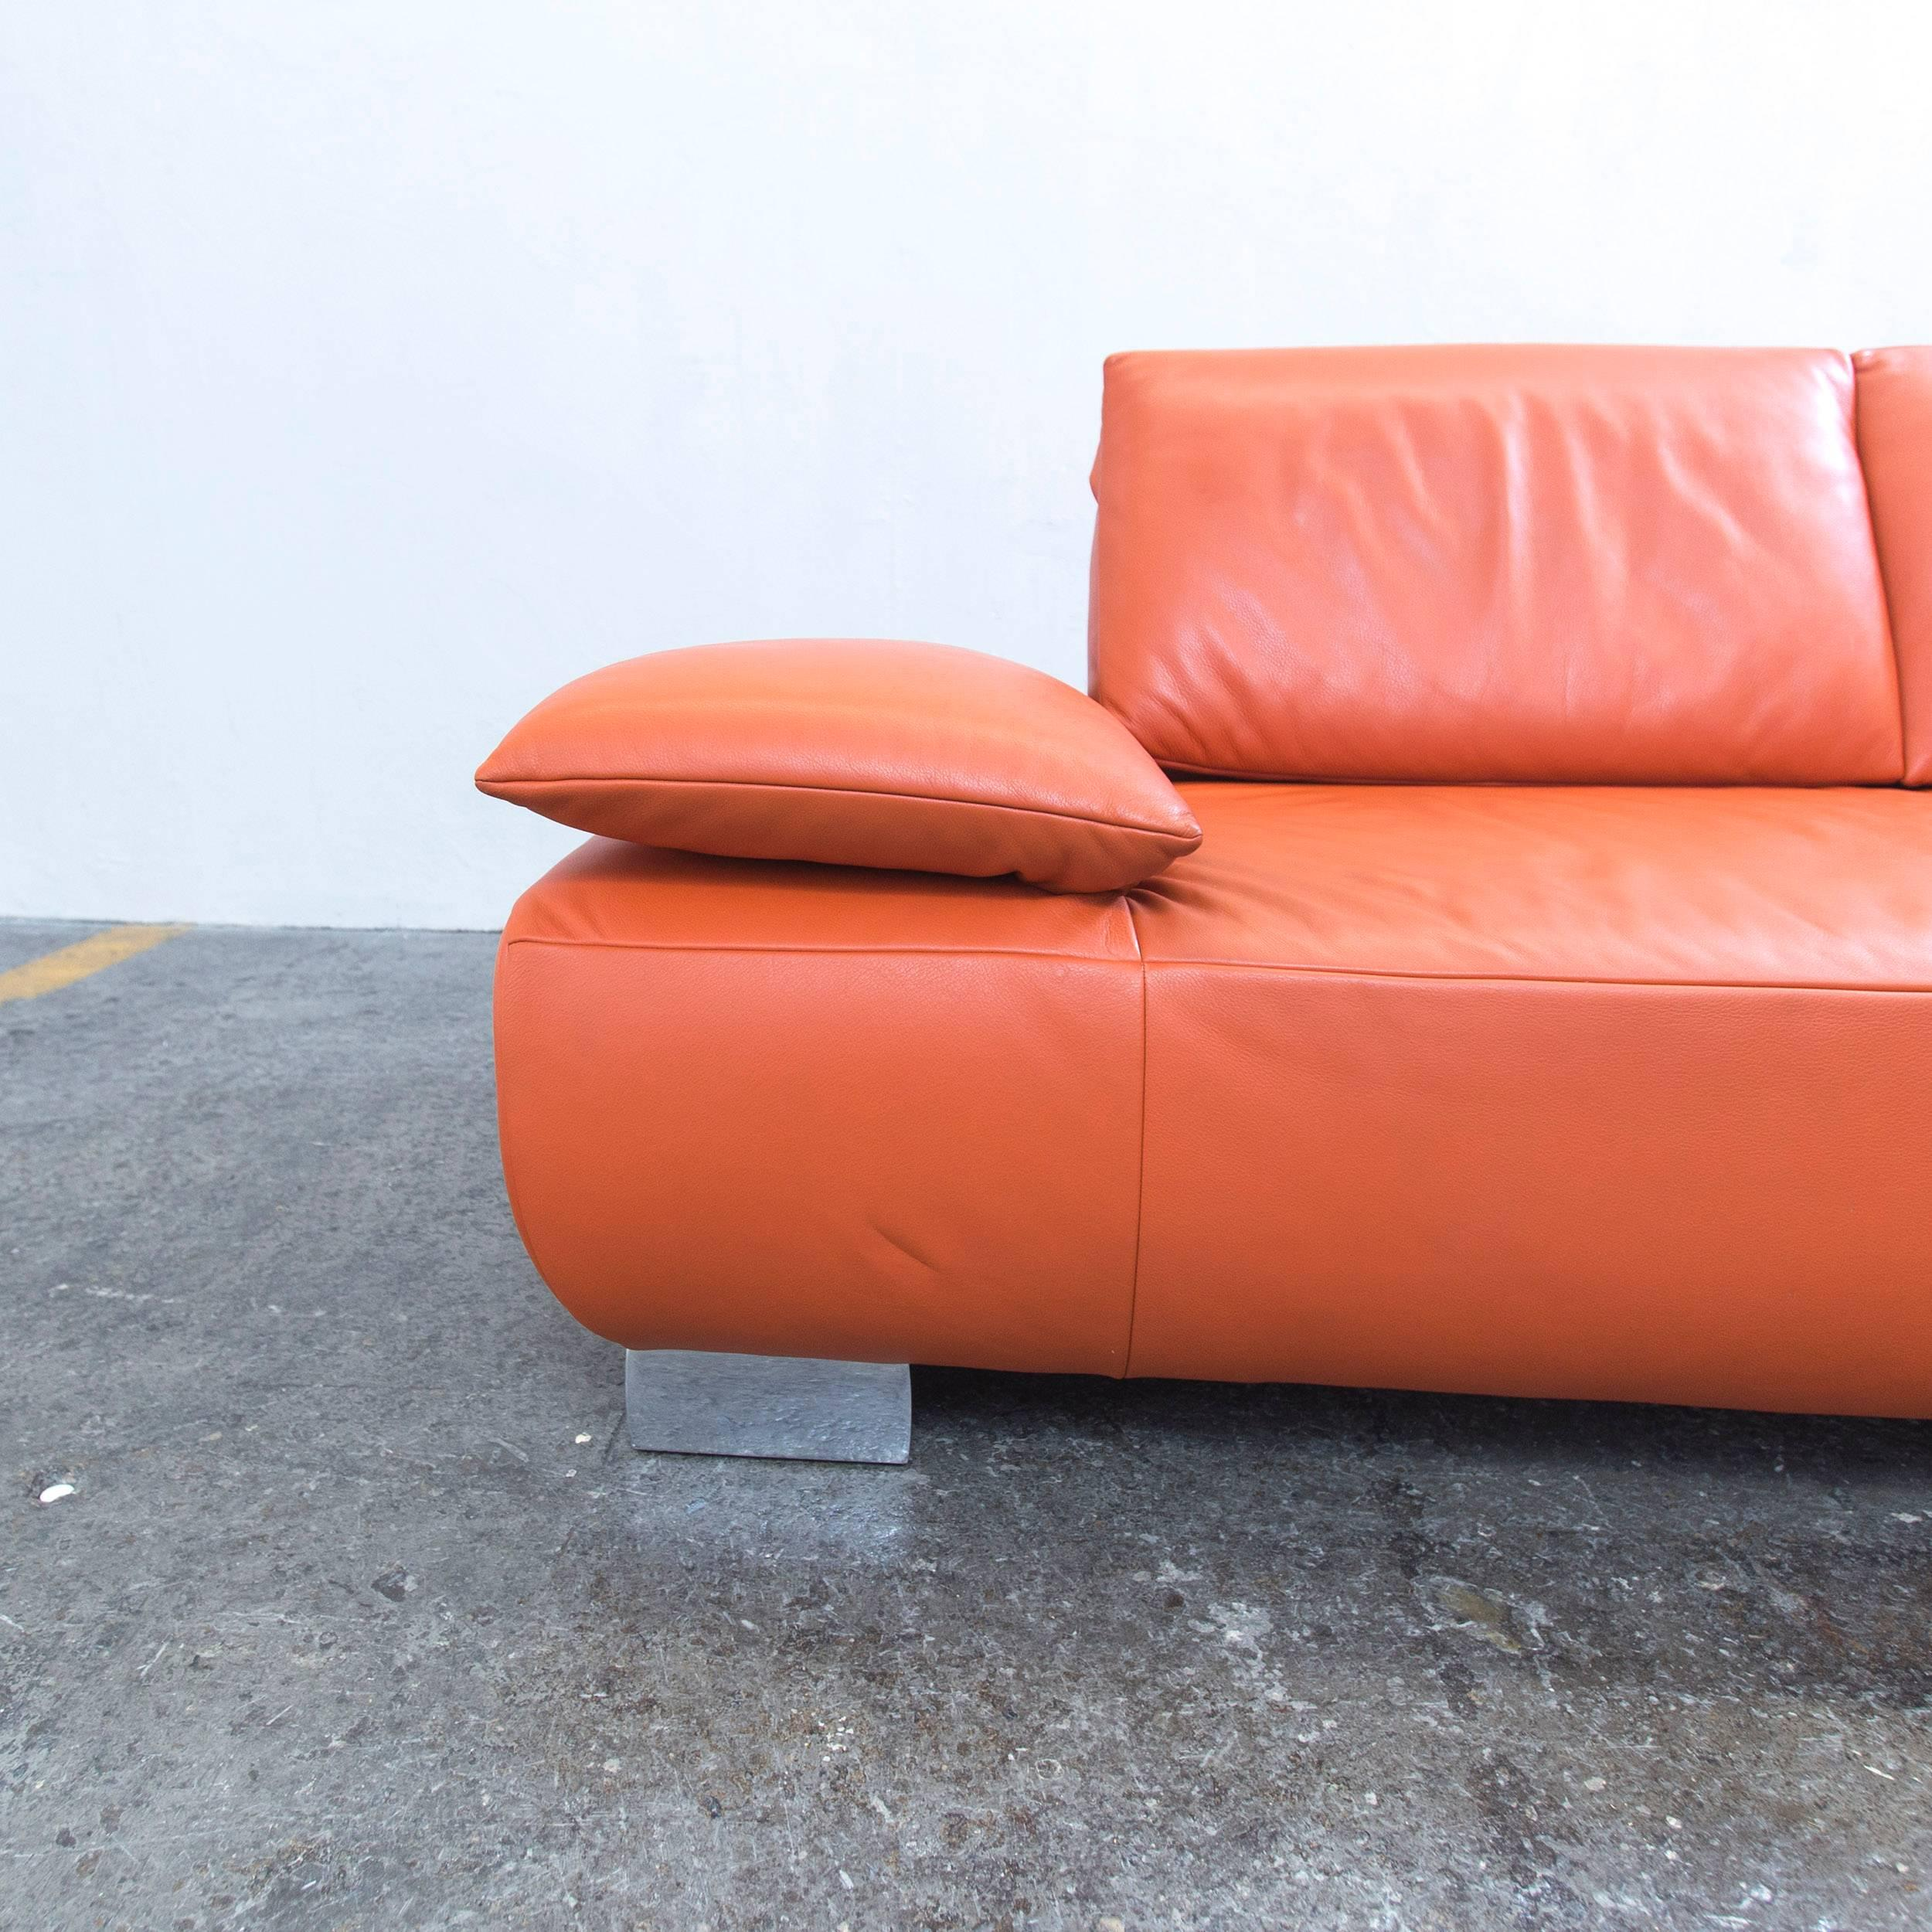 2 Sitzer Couch Awesome Fm Sitzer Mit Stripes By Paul Smith With 2